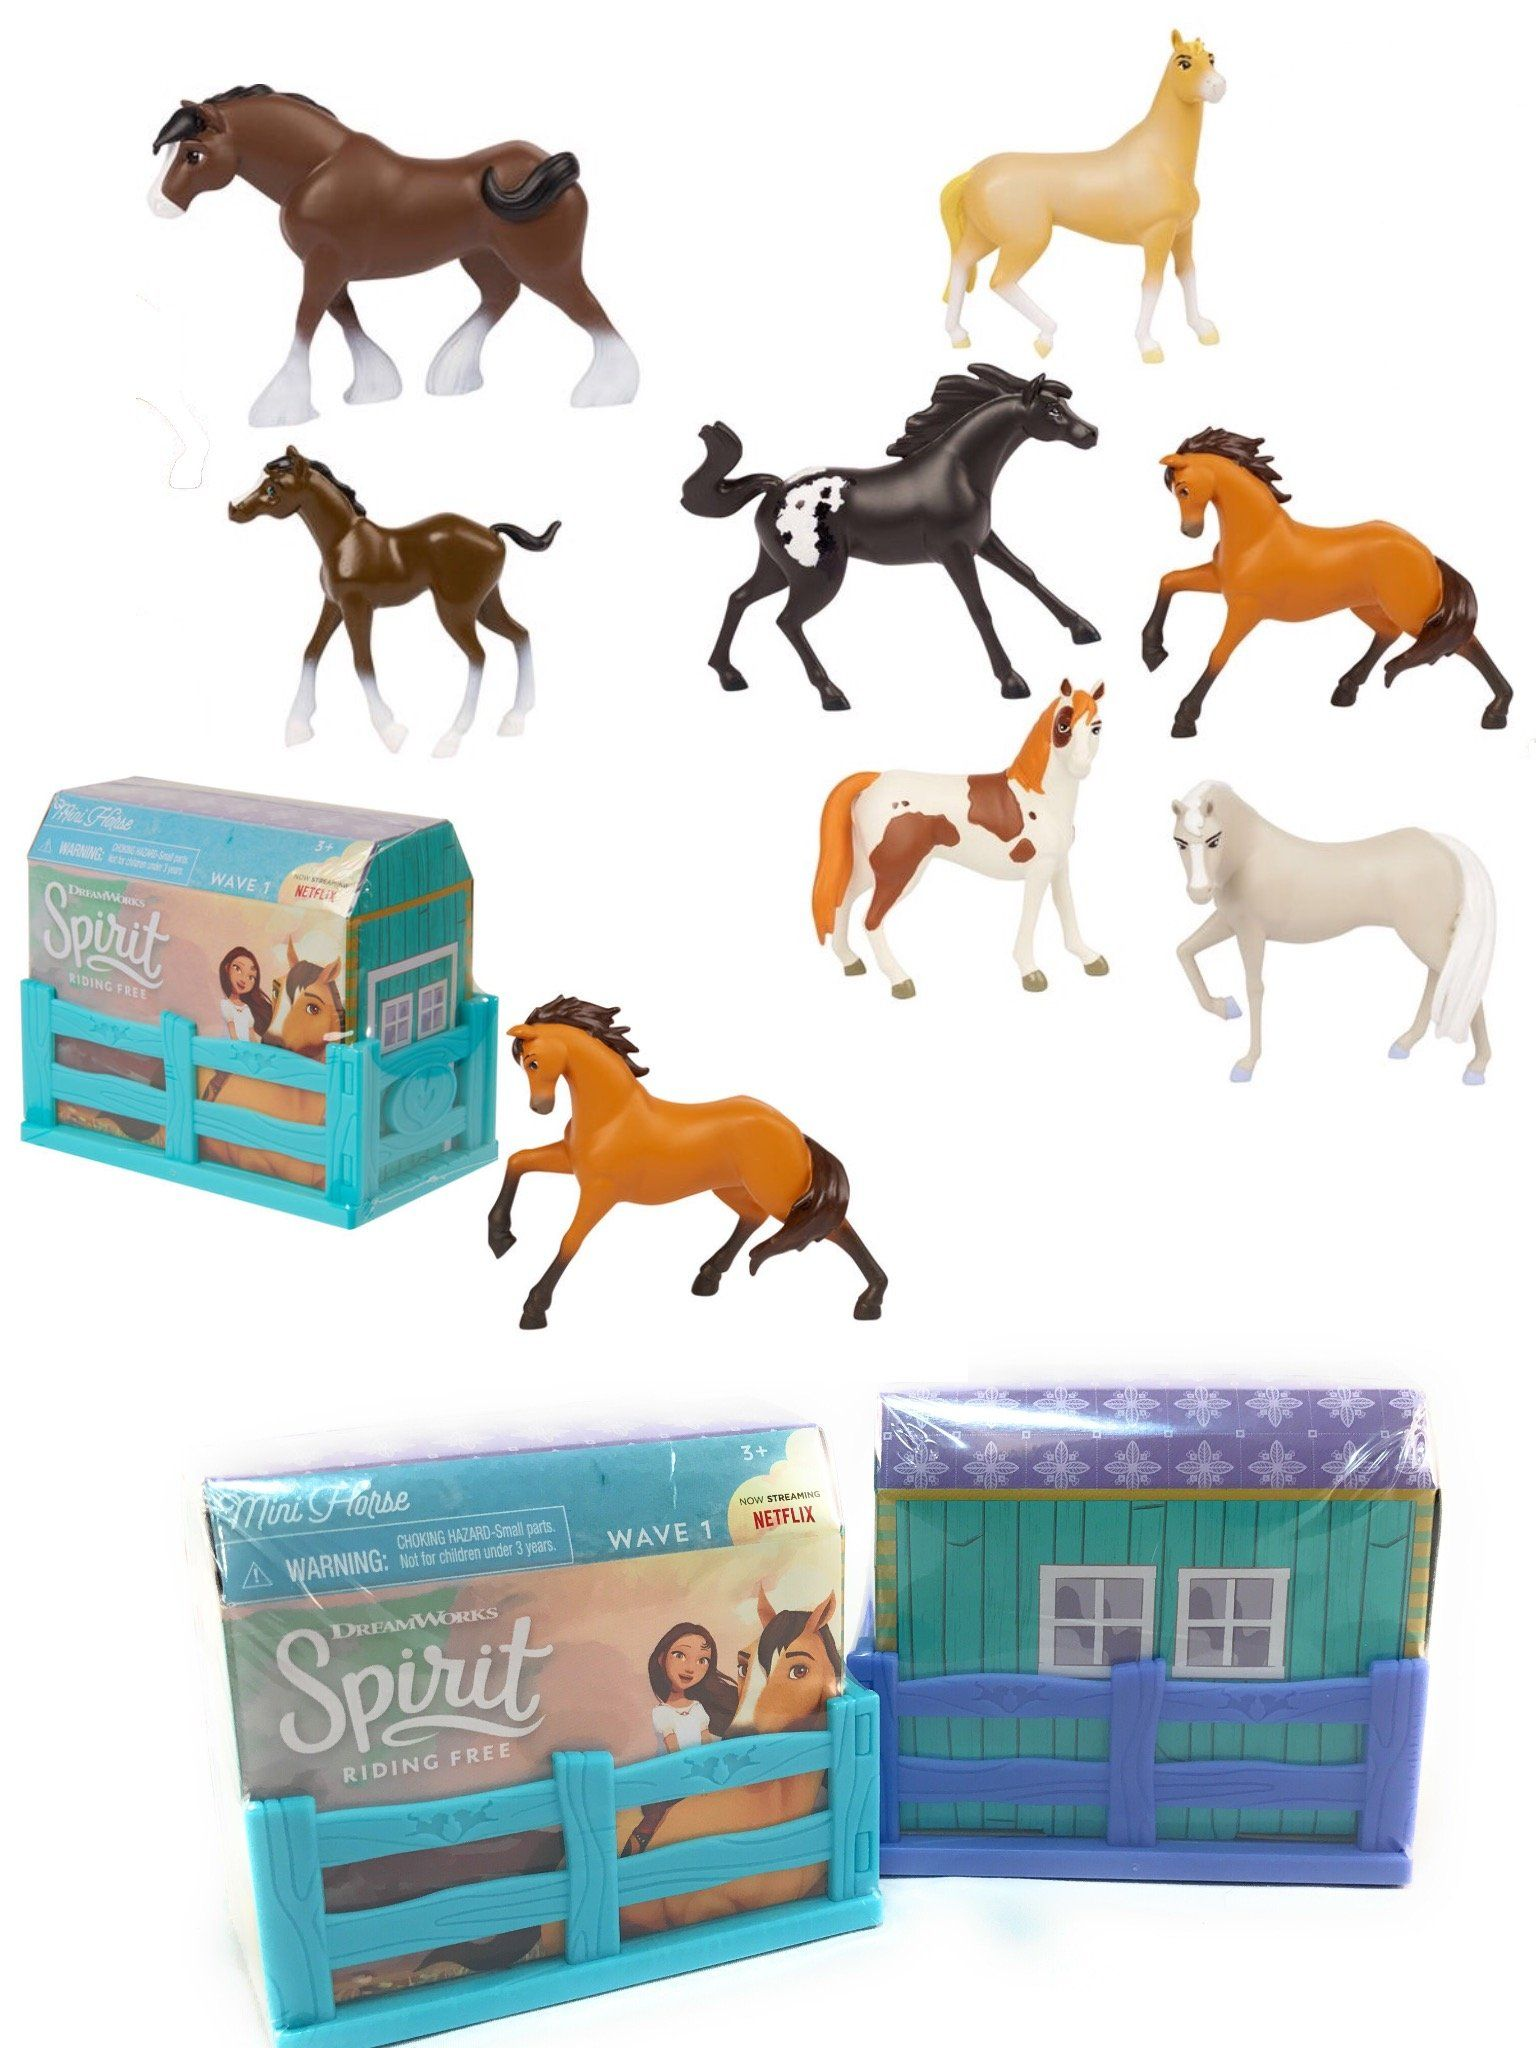 SET OF 2 DreamWorks SPIRIT RIDING FREE Mini Horse Figures Blind Box